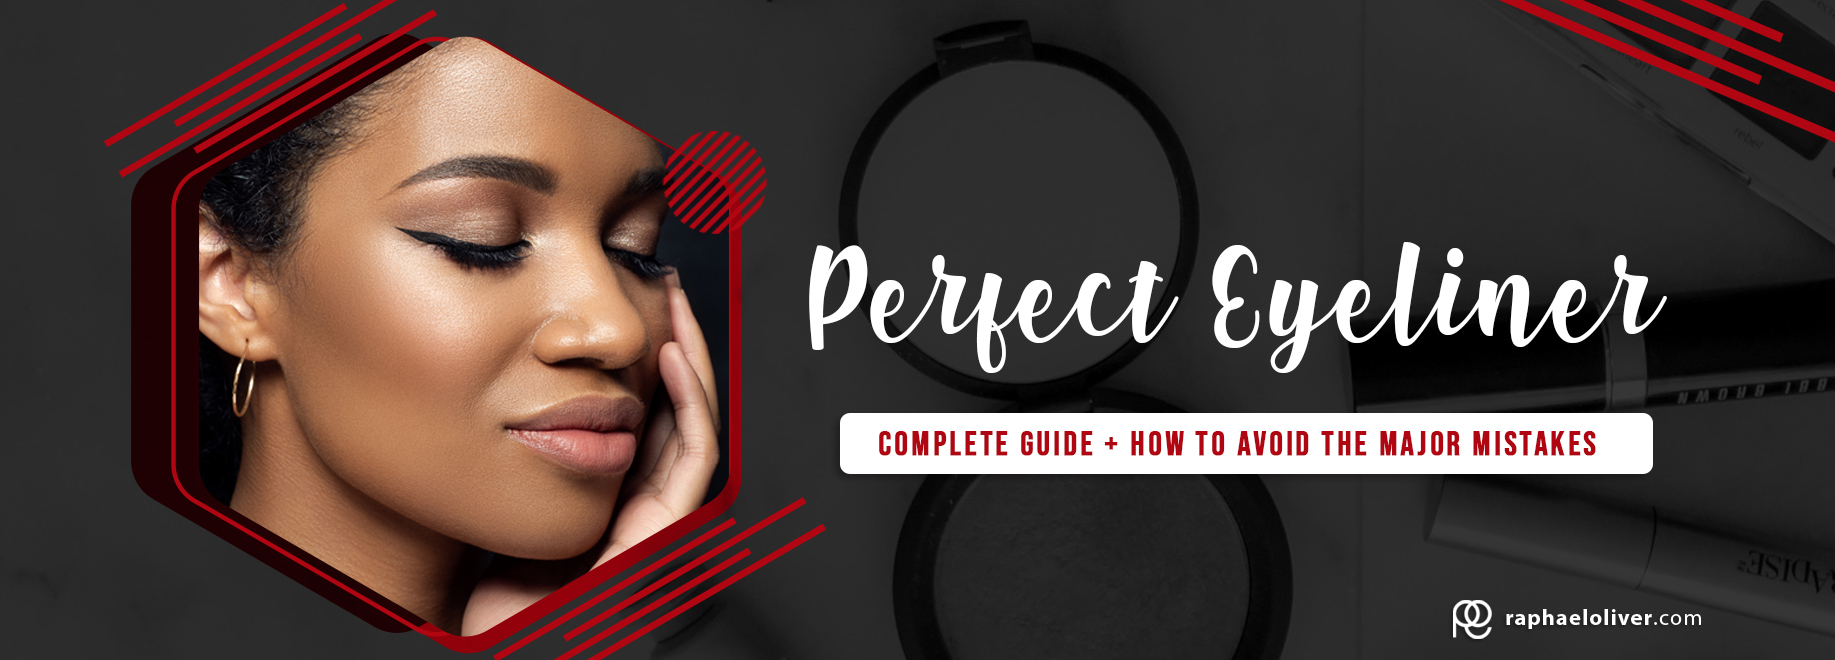 How to make make a perfect eyeliner – Complete Guide + how to avoid the major mistakes